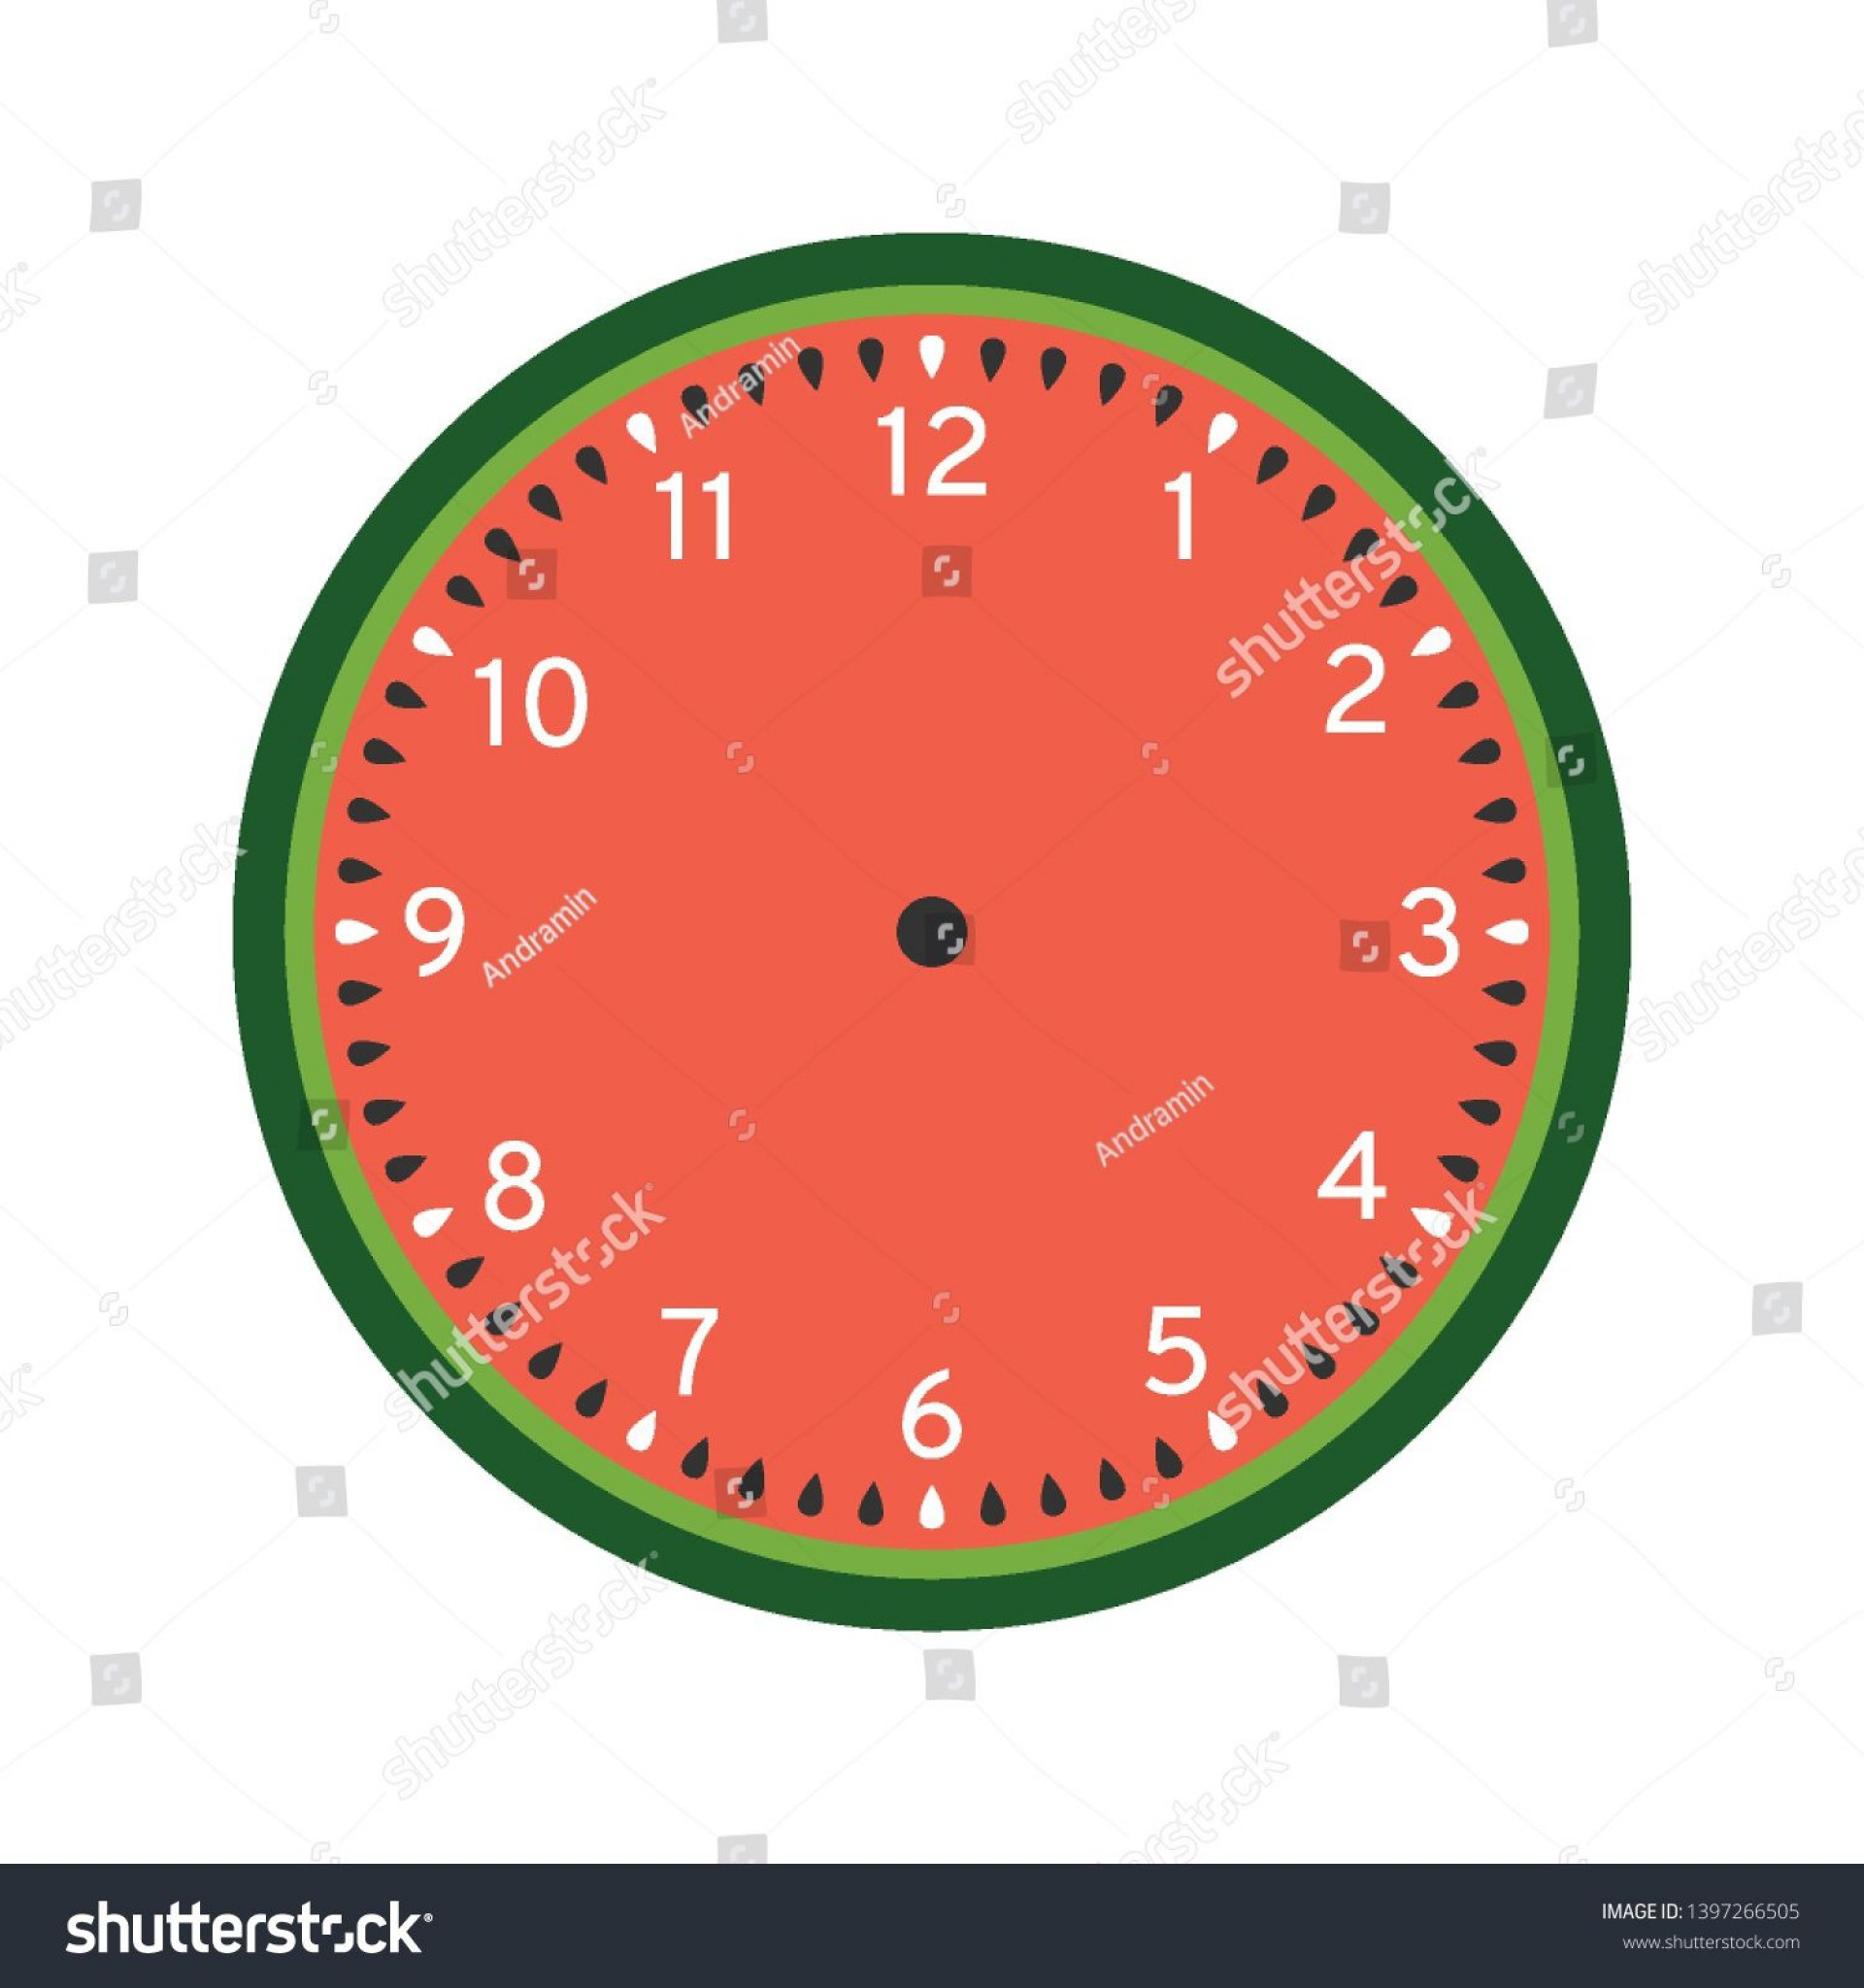 008 Surprising Customizable Clock Face Template Idea 1920